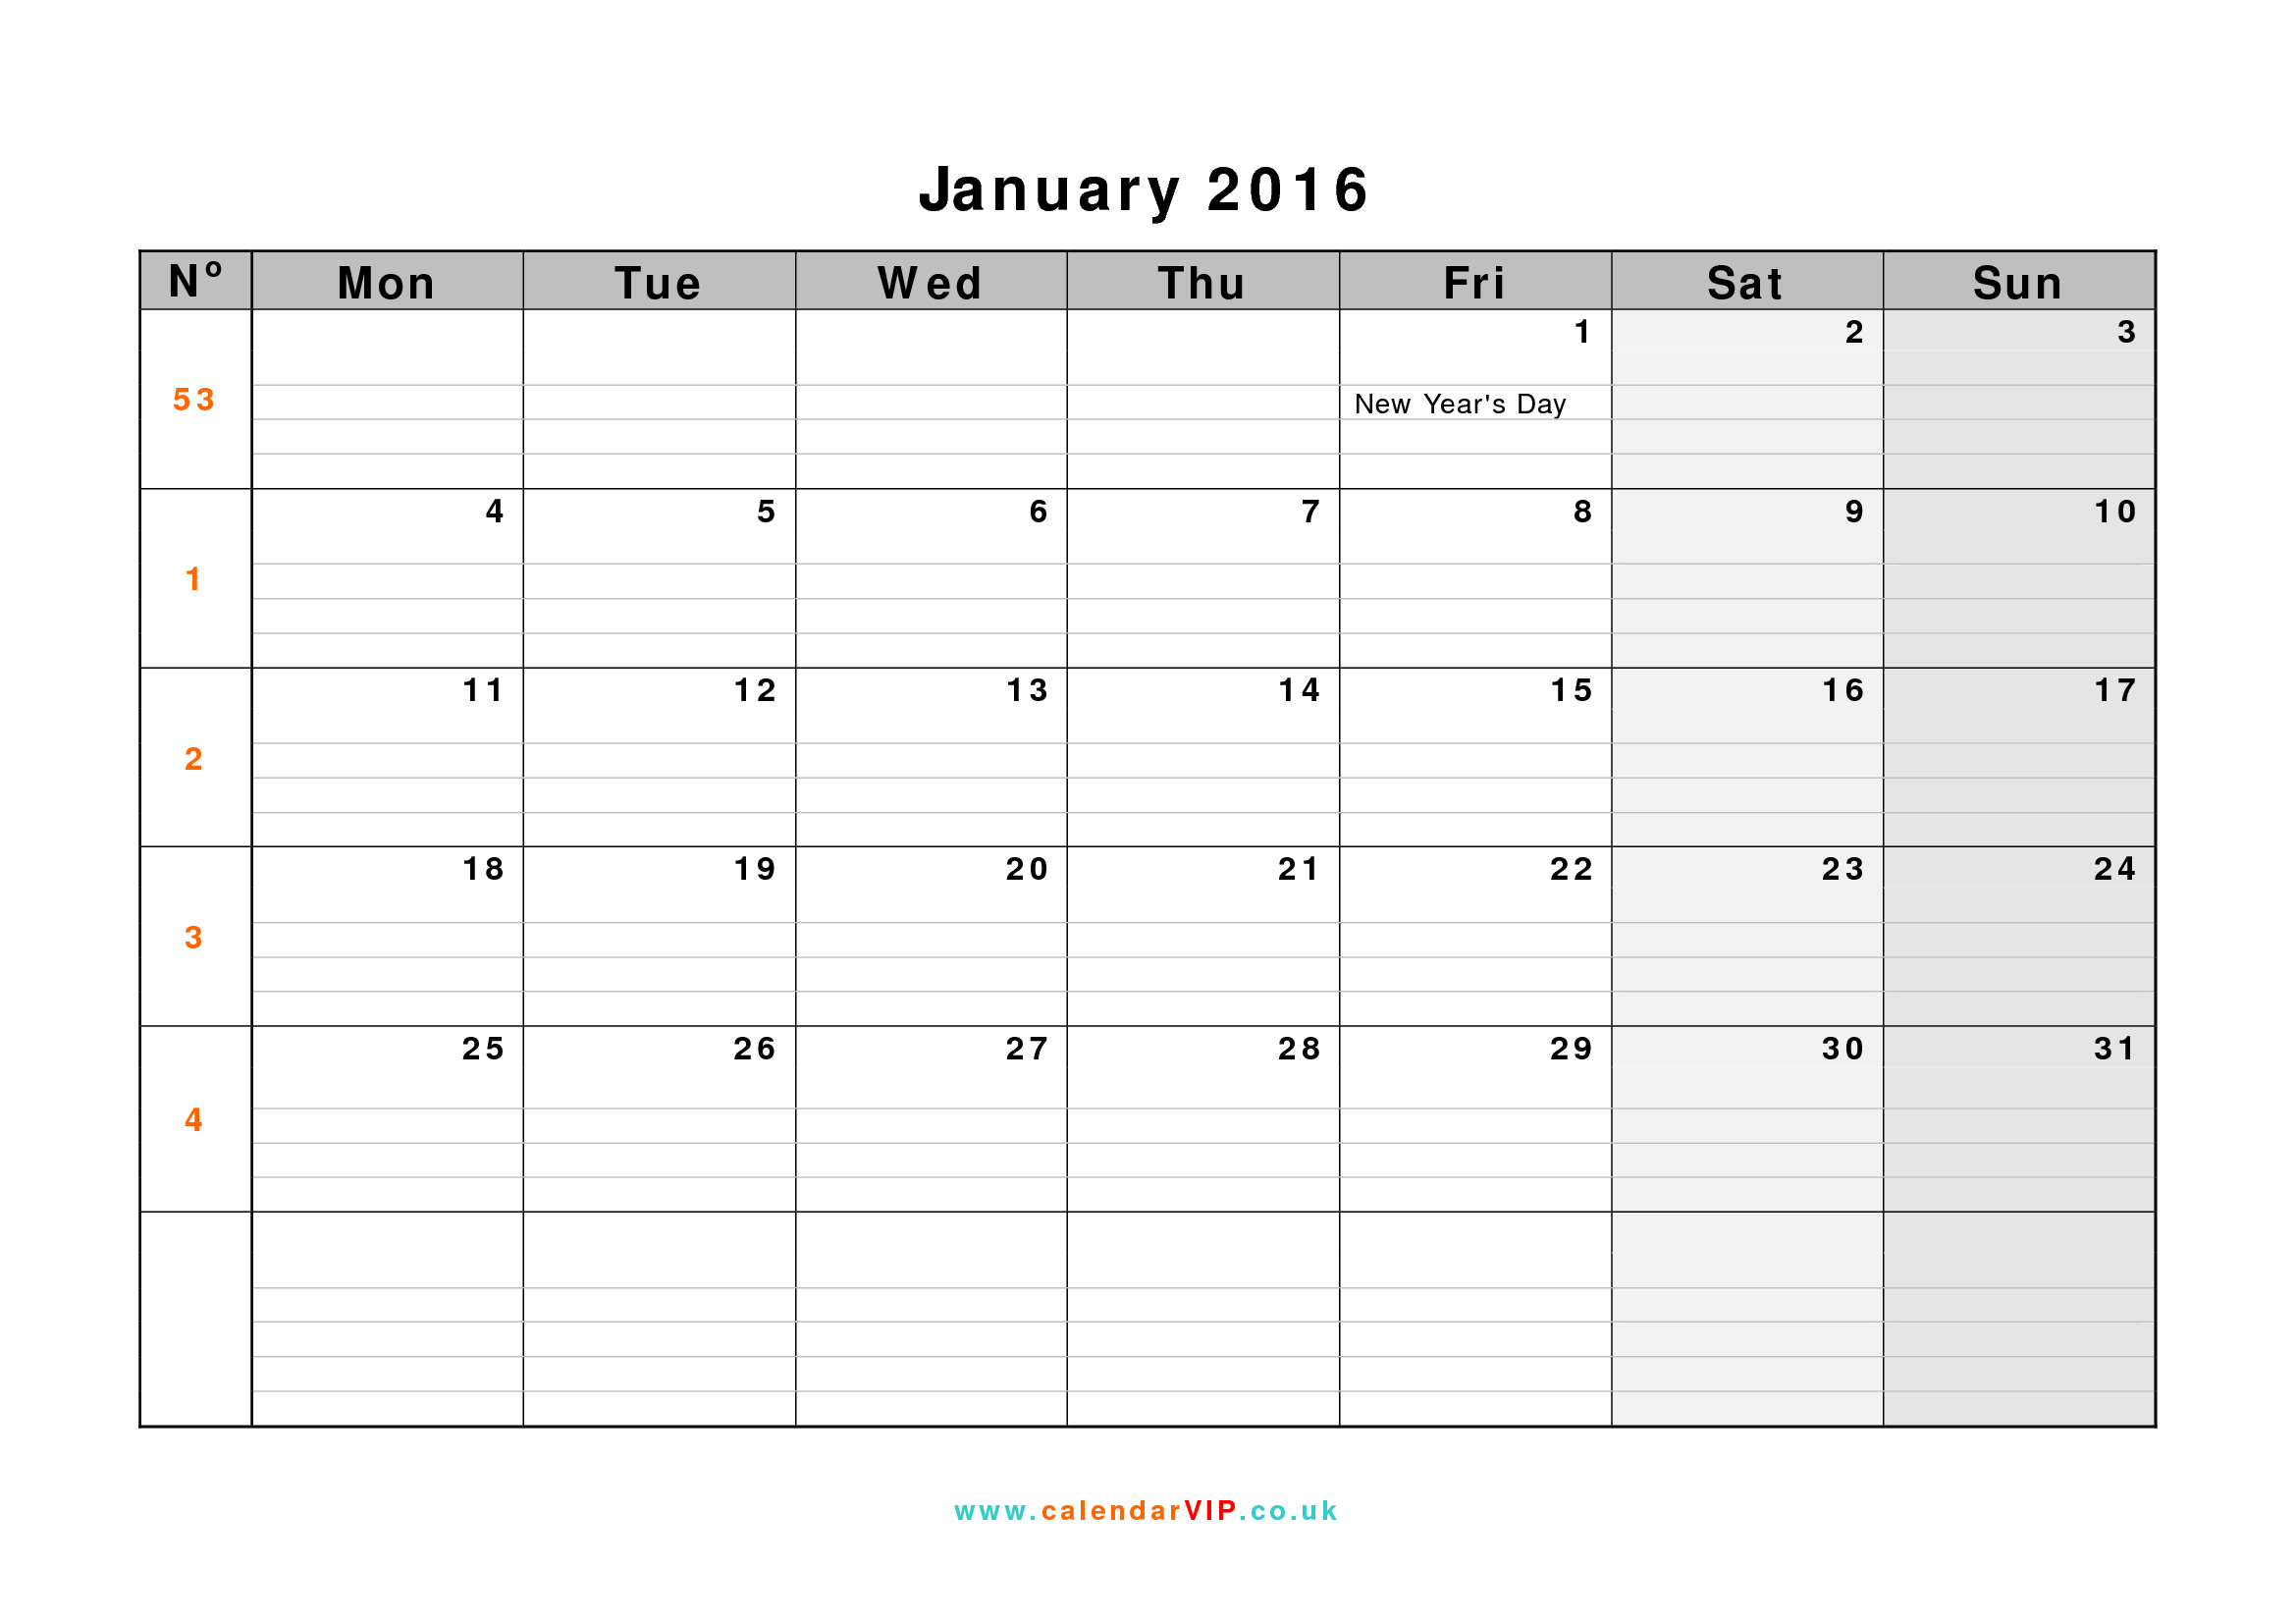 Calendar 2016 UK Free Yearly Calendar Templates for UK